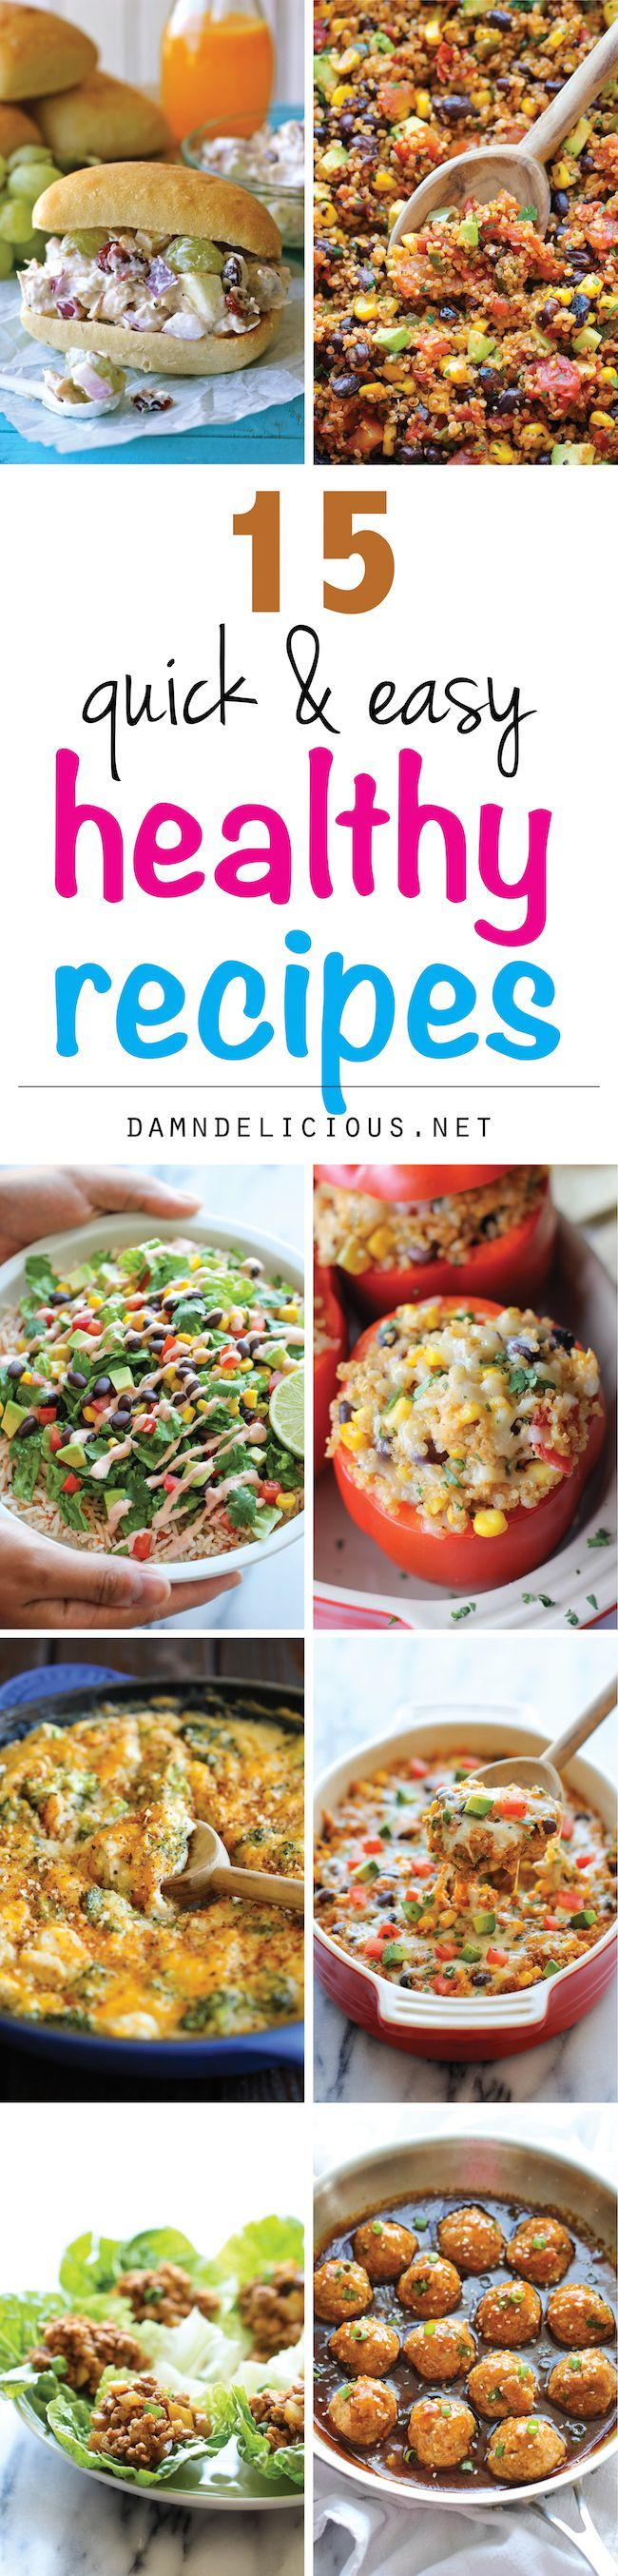 """15 Quick and Easy Healthy Recipes - The best and easiest healthy, comforting recipes that aren't boring at all. And they don't taste """"healthy"""" at all!"""